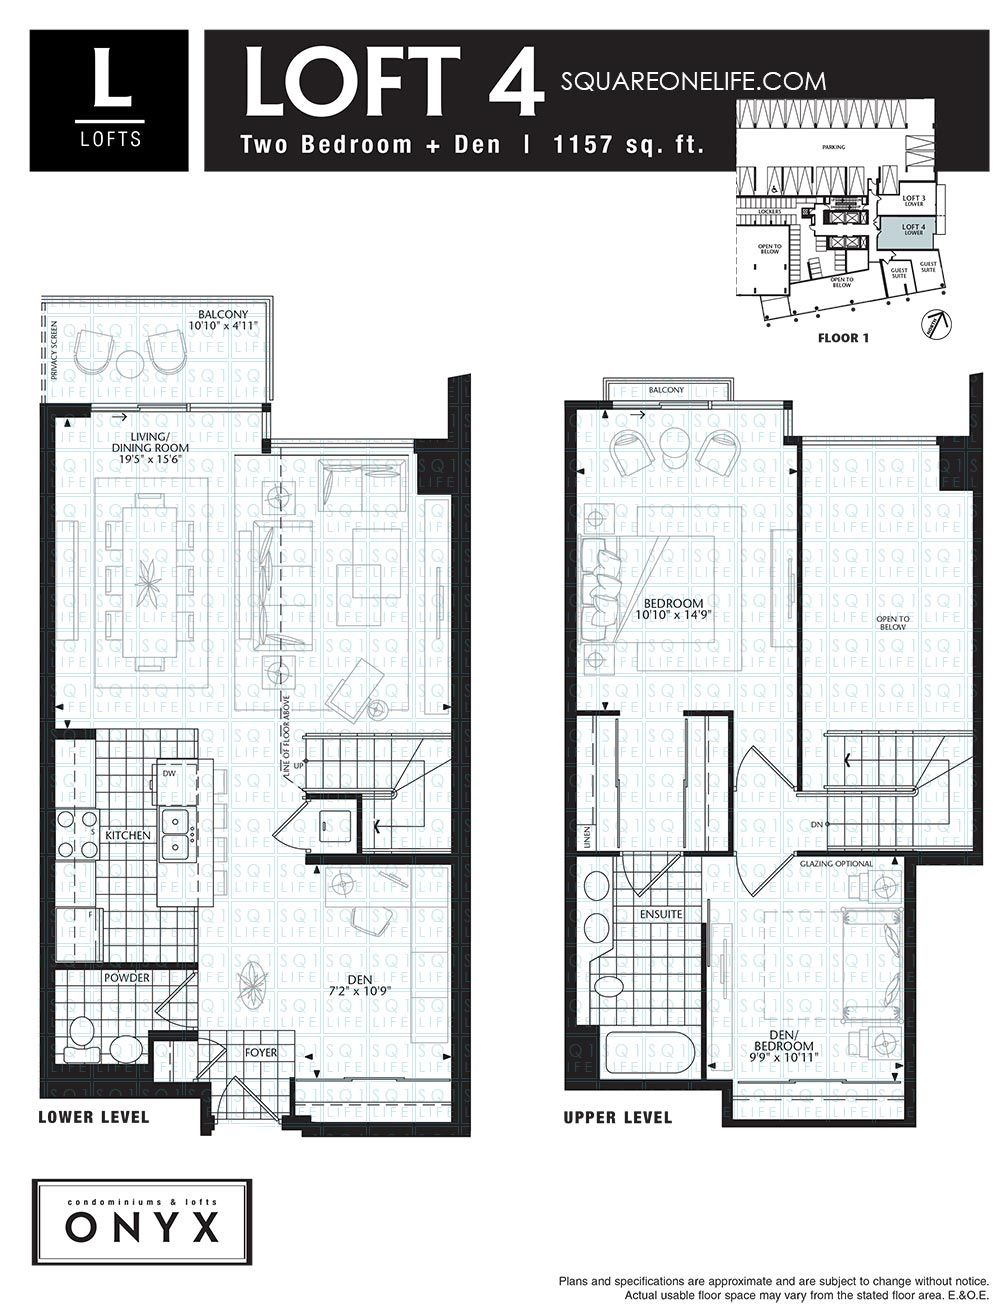 Onyx condo 223 webb dr mississauga squareonelife for 4 bedroom loft floor plans